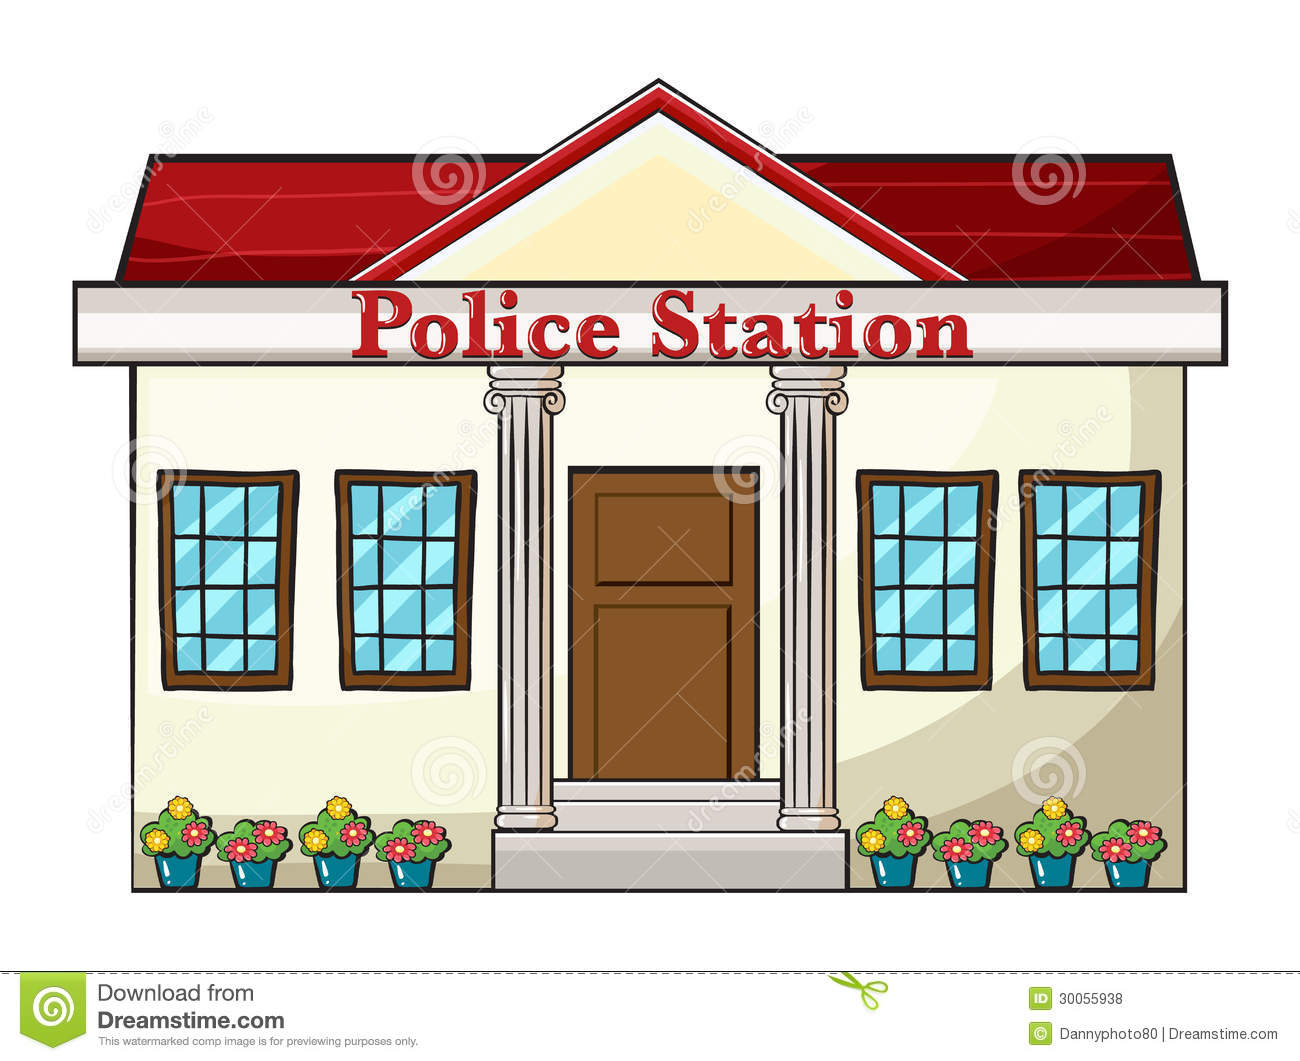 Police Station Royalty Free Stock Photos-Police Station Royalty Free Stock Photos Image 30055938-11